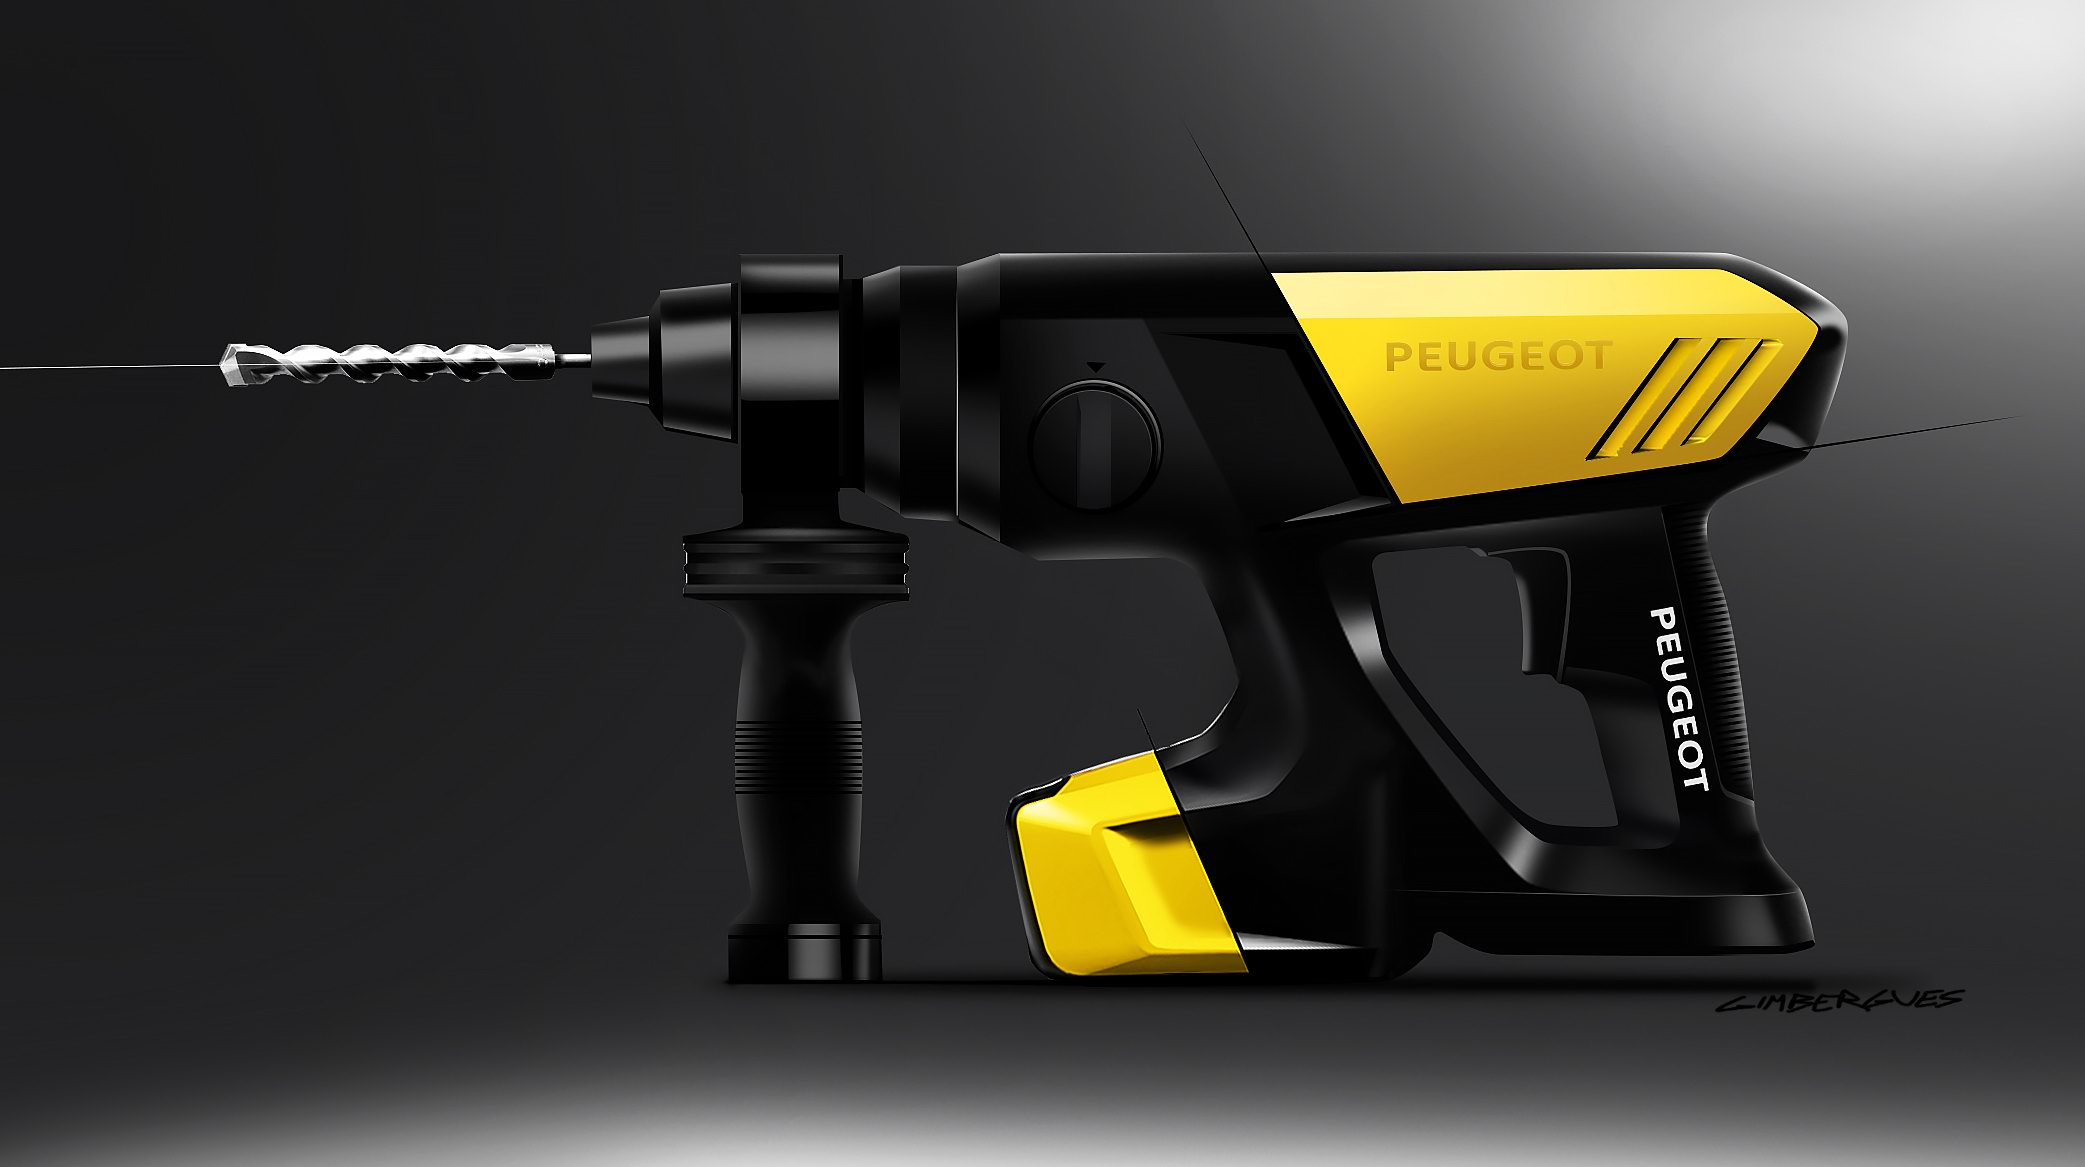 Product Design - SKETCHES - PEUGEOT POWERTOOLS